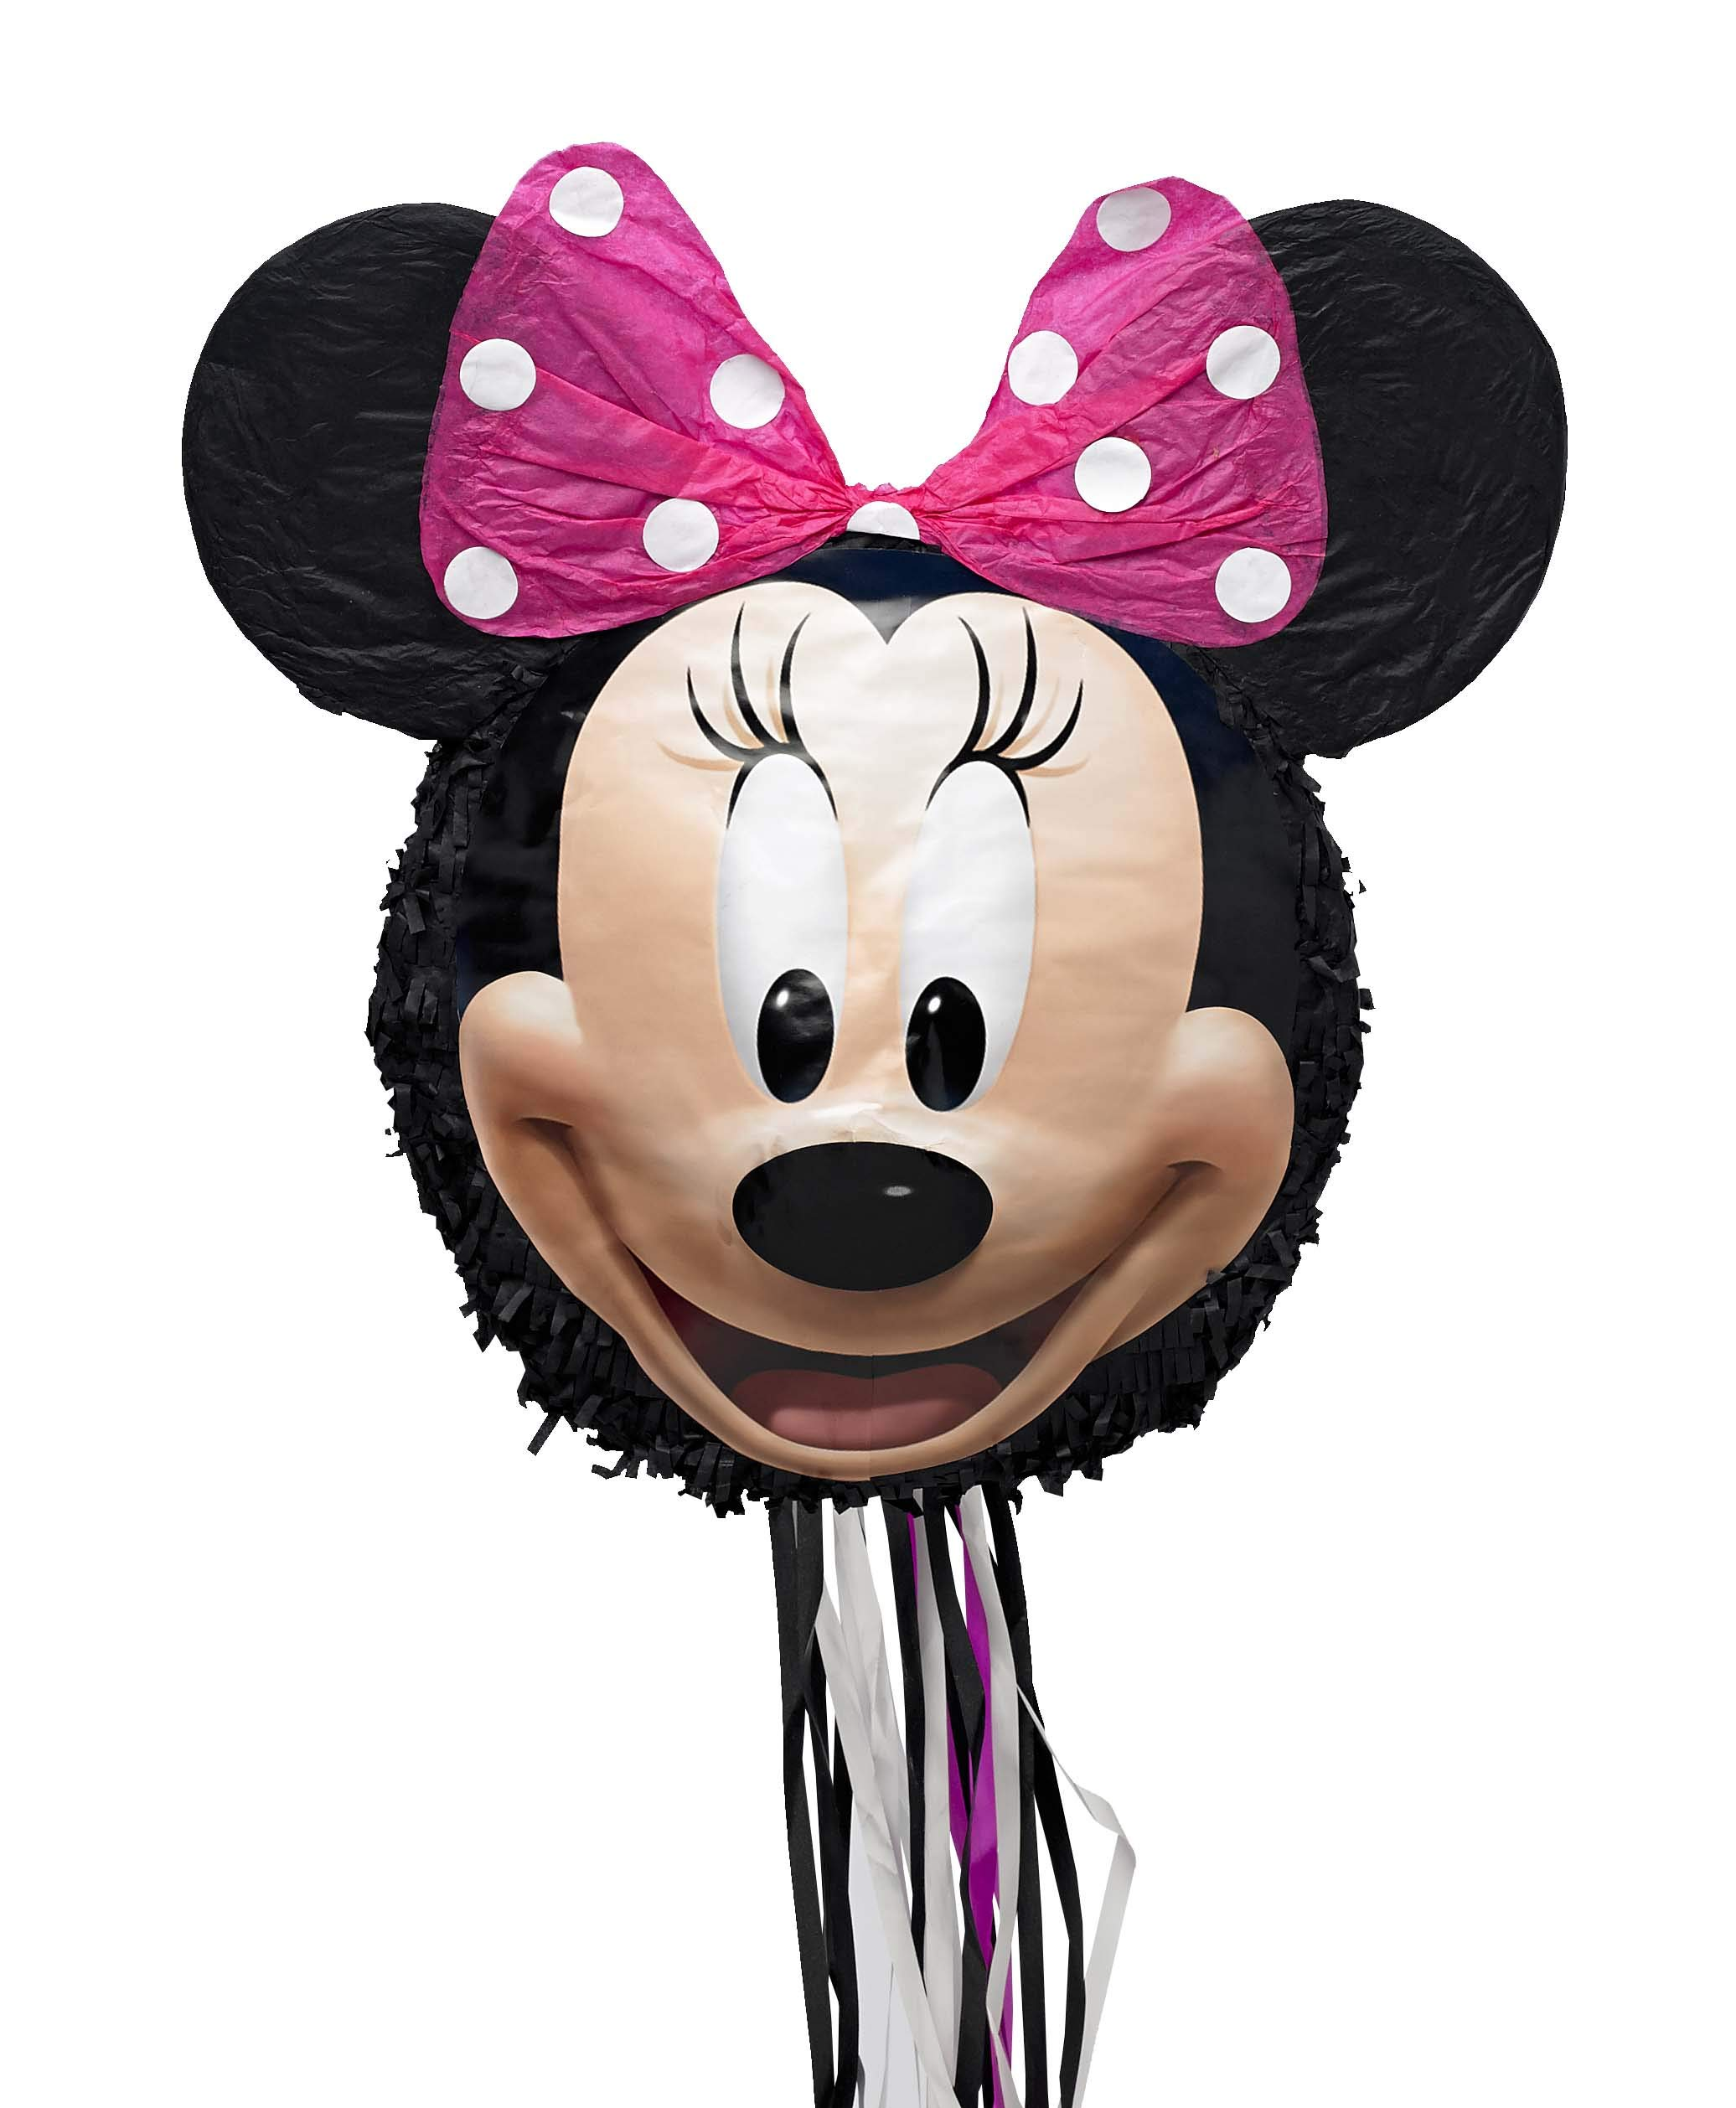 Disney Minnie Mouse 3D Pull-String Pinata, As Shown, One Size